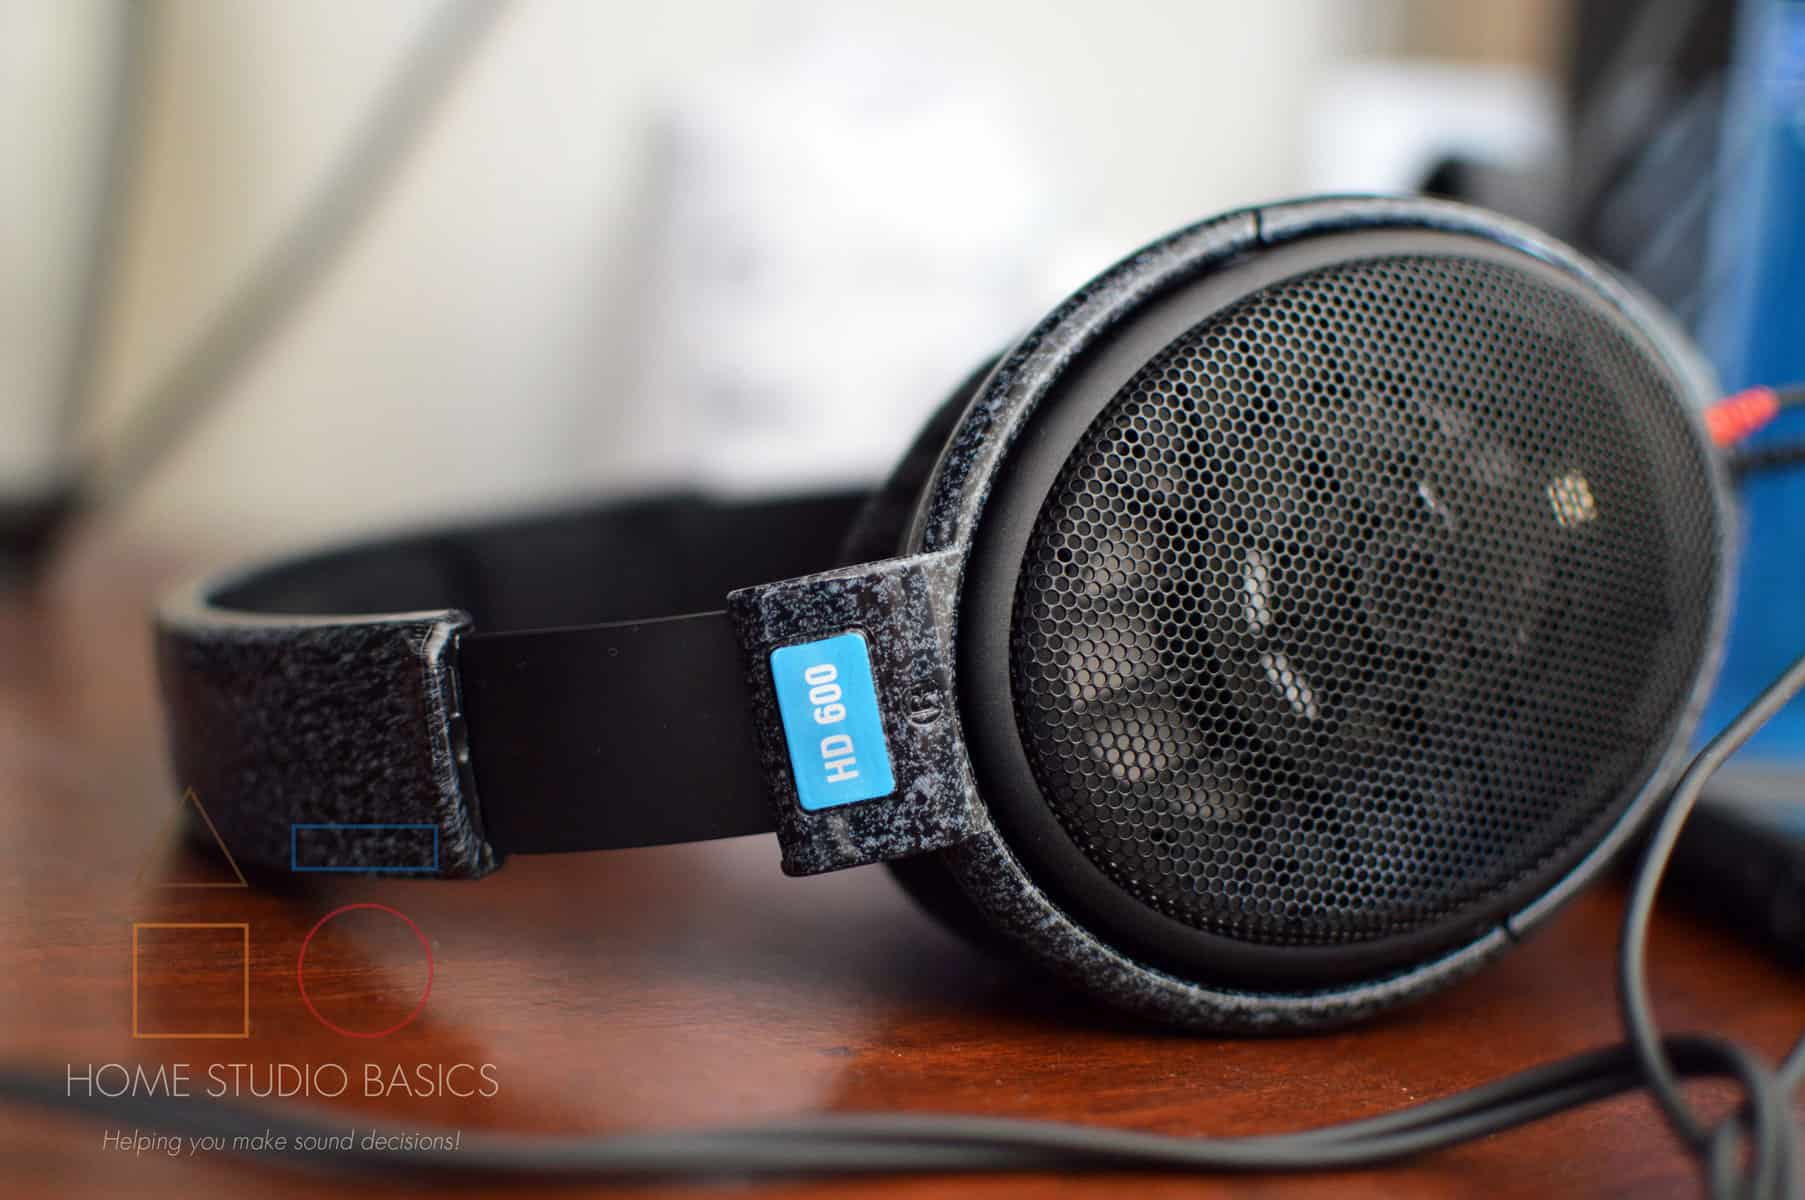 Sennheiser HD 598 vs. HD 650 vs. HD 600